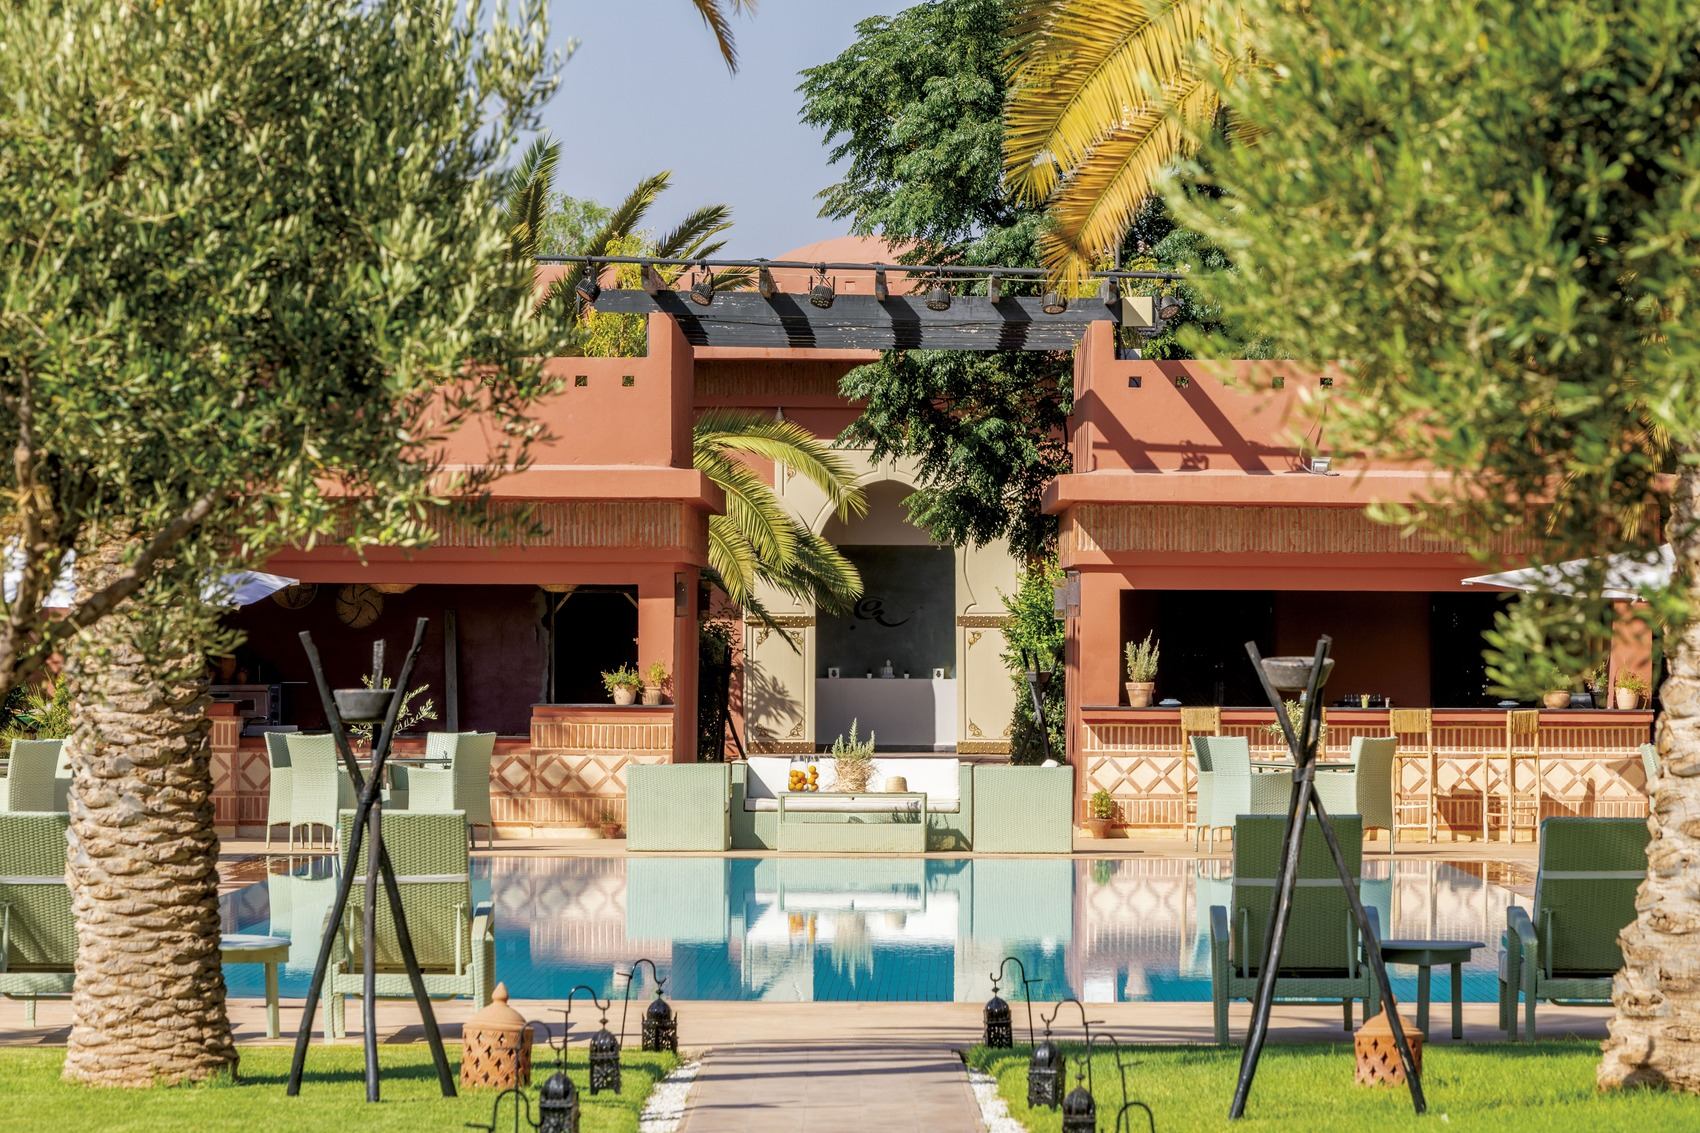 Luxury boutique hotel 5 stars Palmeraie Marrakesh Morocco Domaine des Remparts - swimming pool